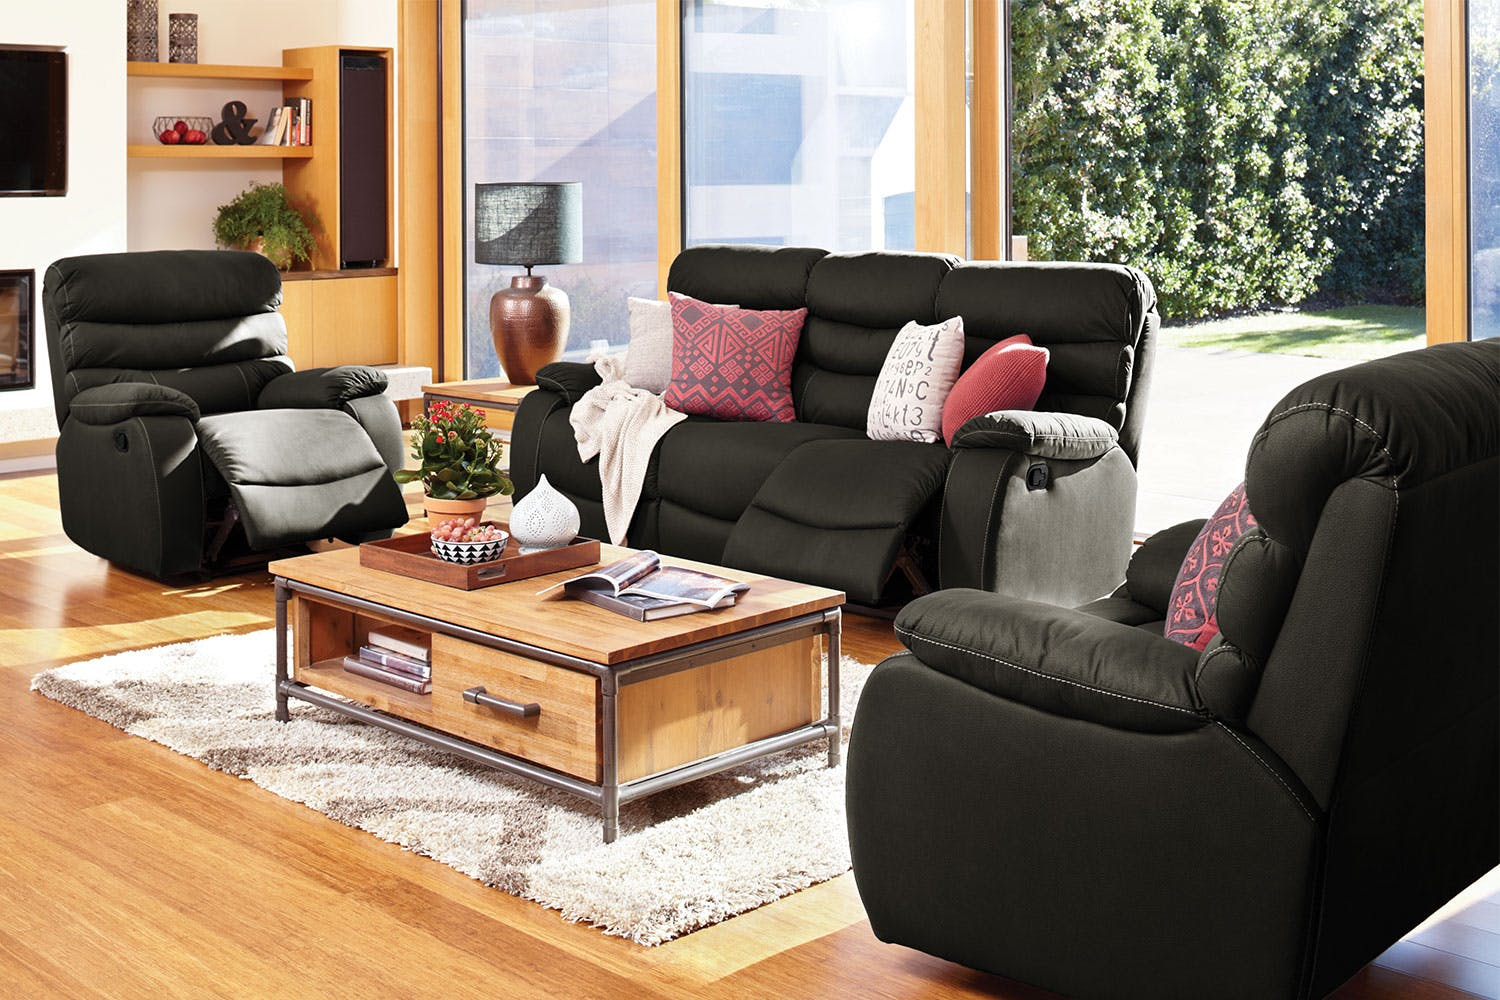 Image of Fletcher 3 Piece Fabric Recliner Lounge Suite by John Young Furniture